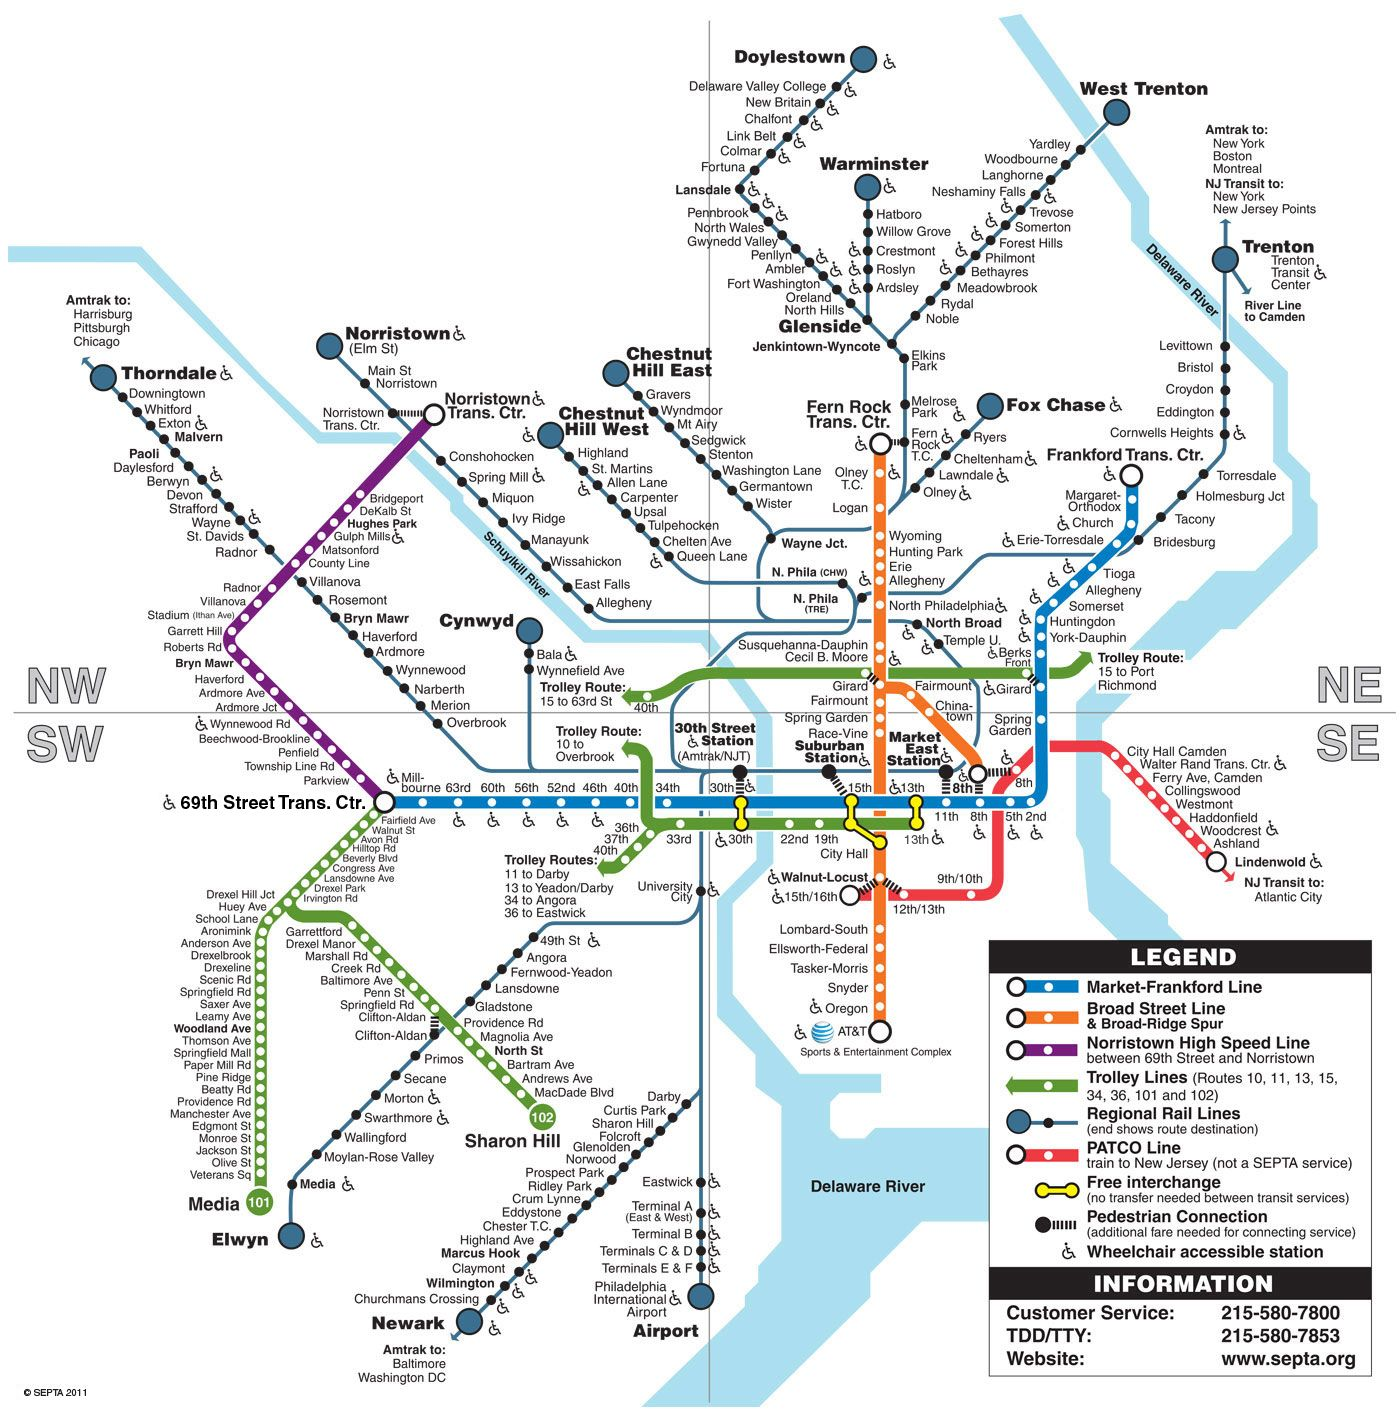 Philly Subway Map.Septa Philadelphia Subway Maps Subway Map Visit Philly Train Map